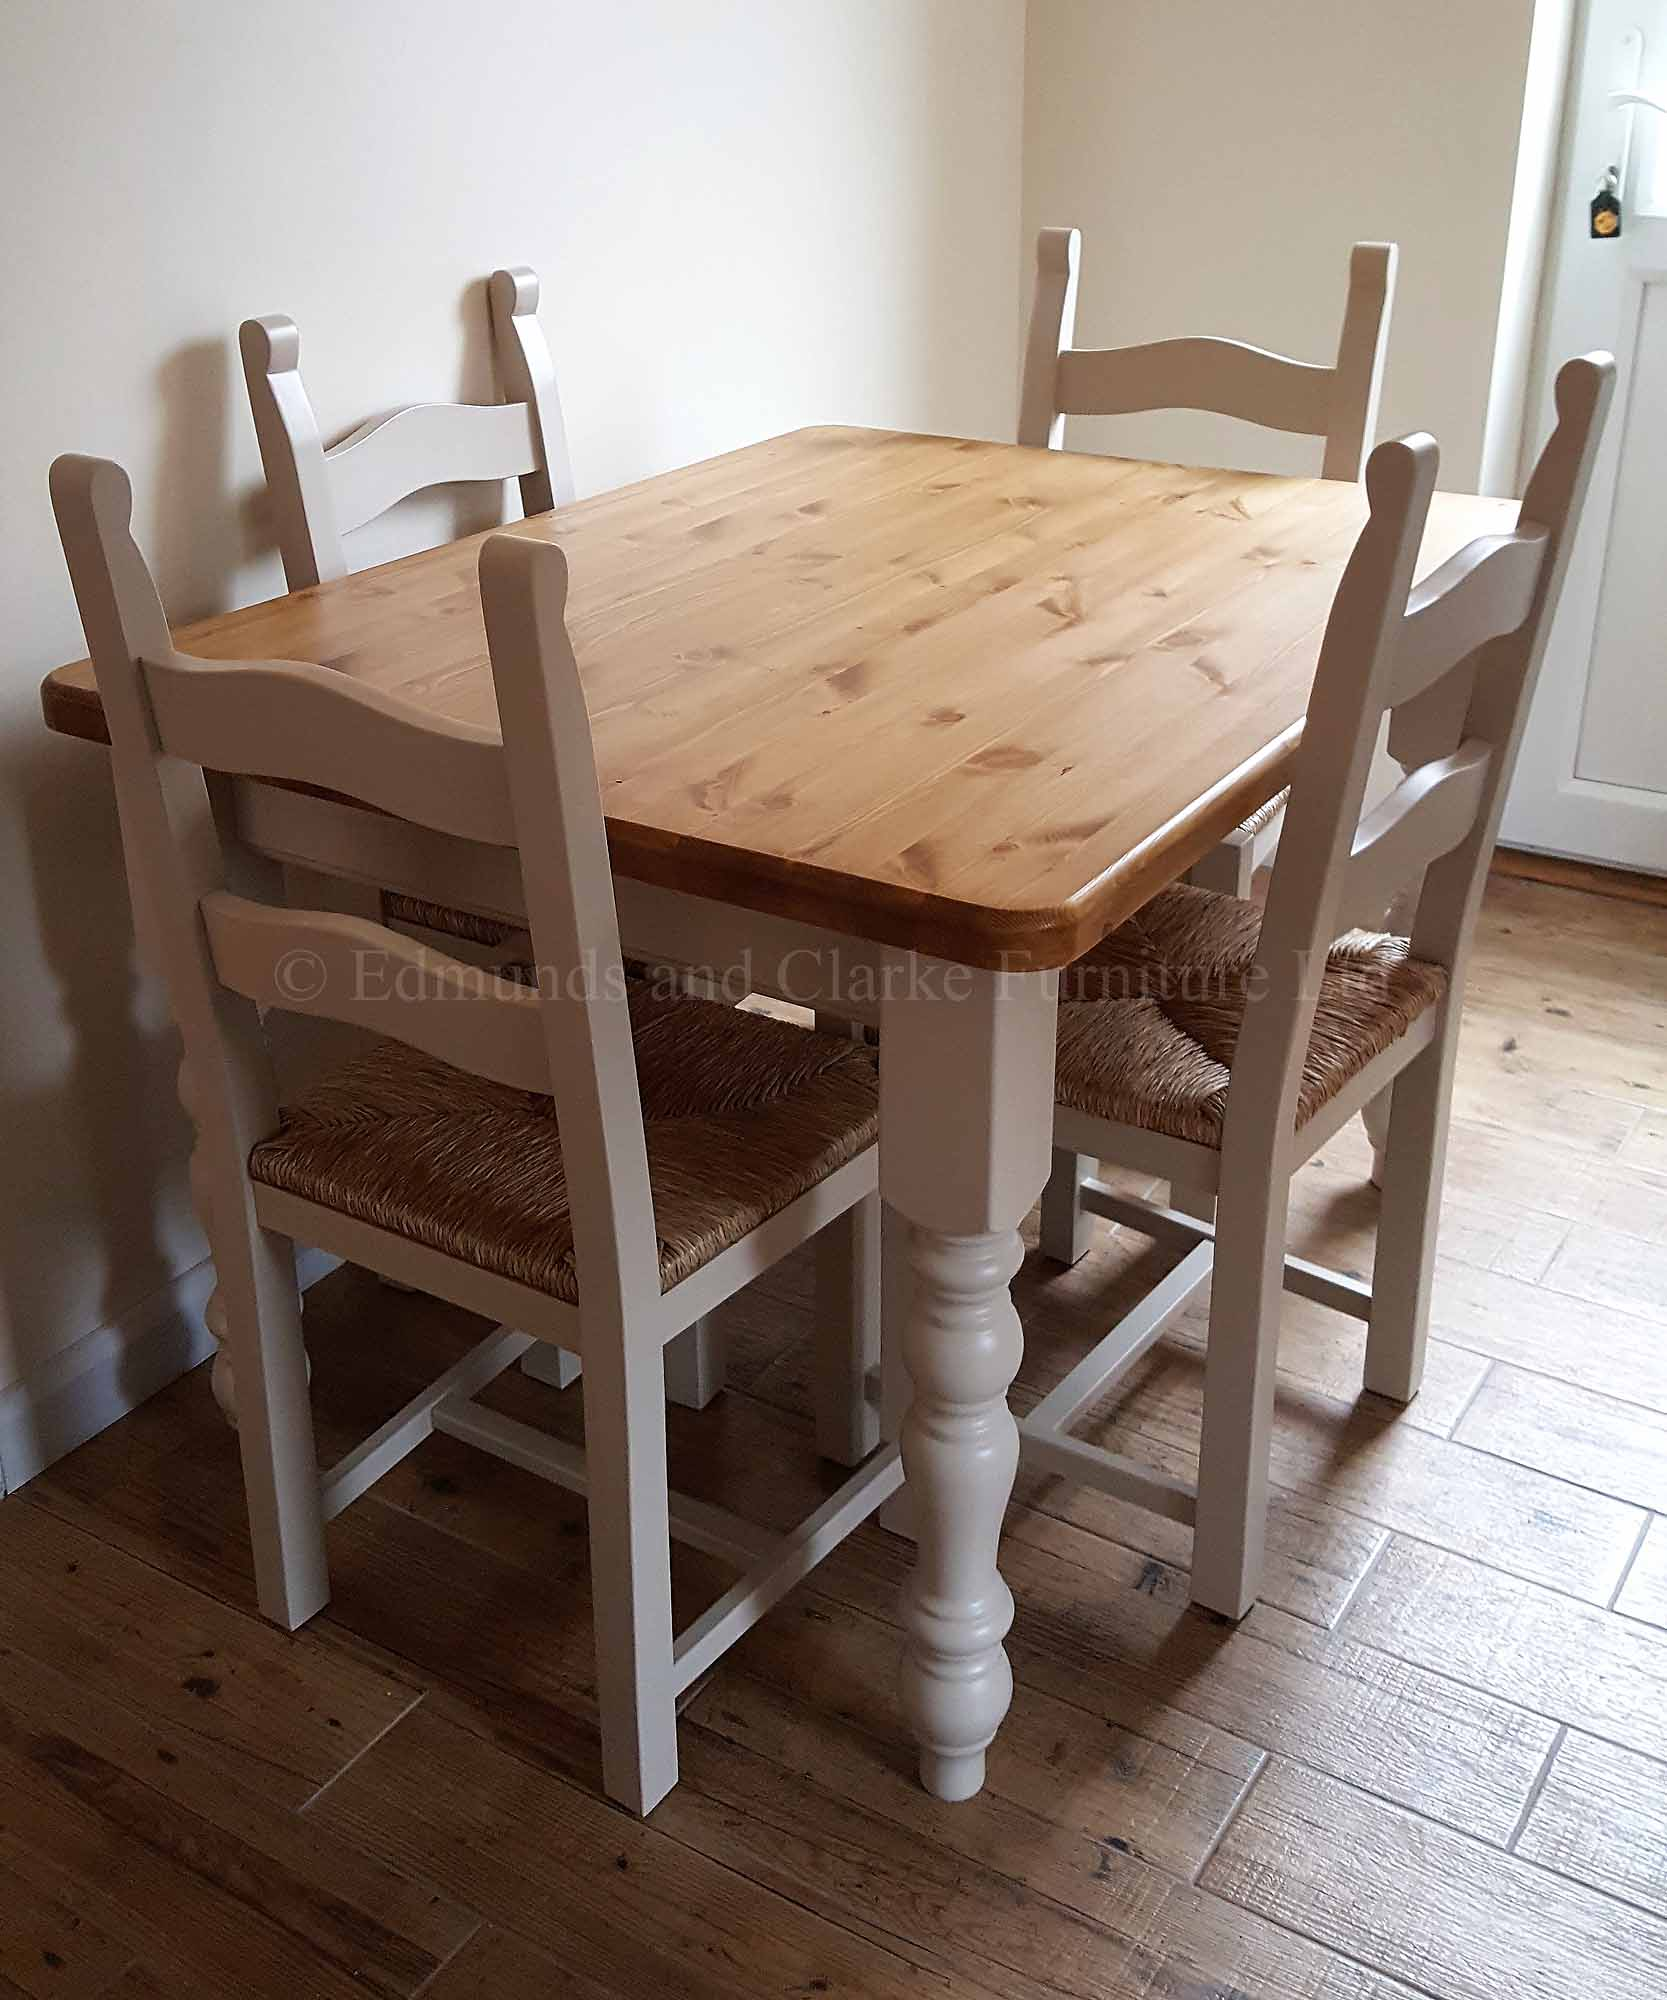 Edmunds Painted Farmhouse Table pine top, image shows 4 x 3 pine top with painted legs, 10 colours available